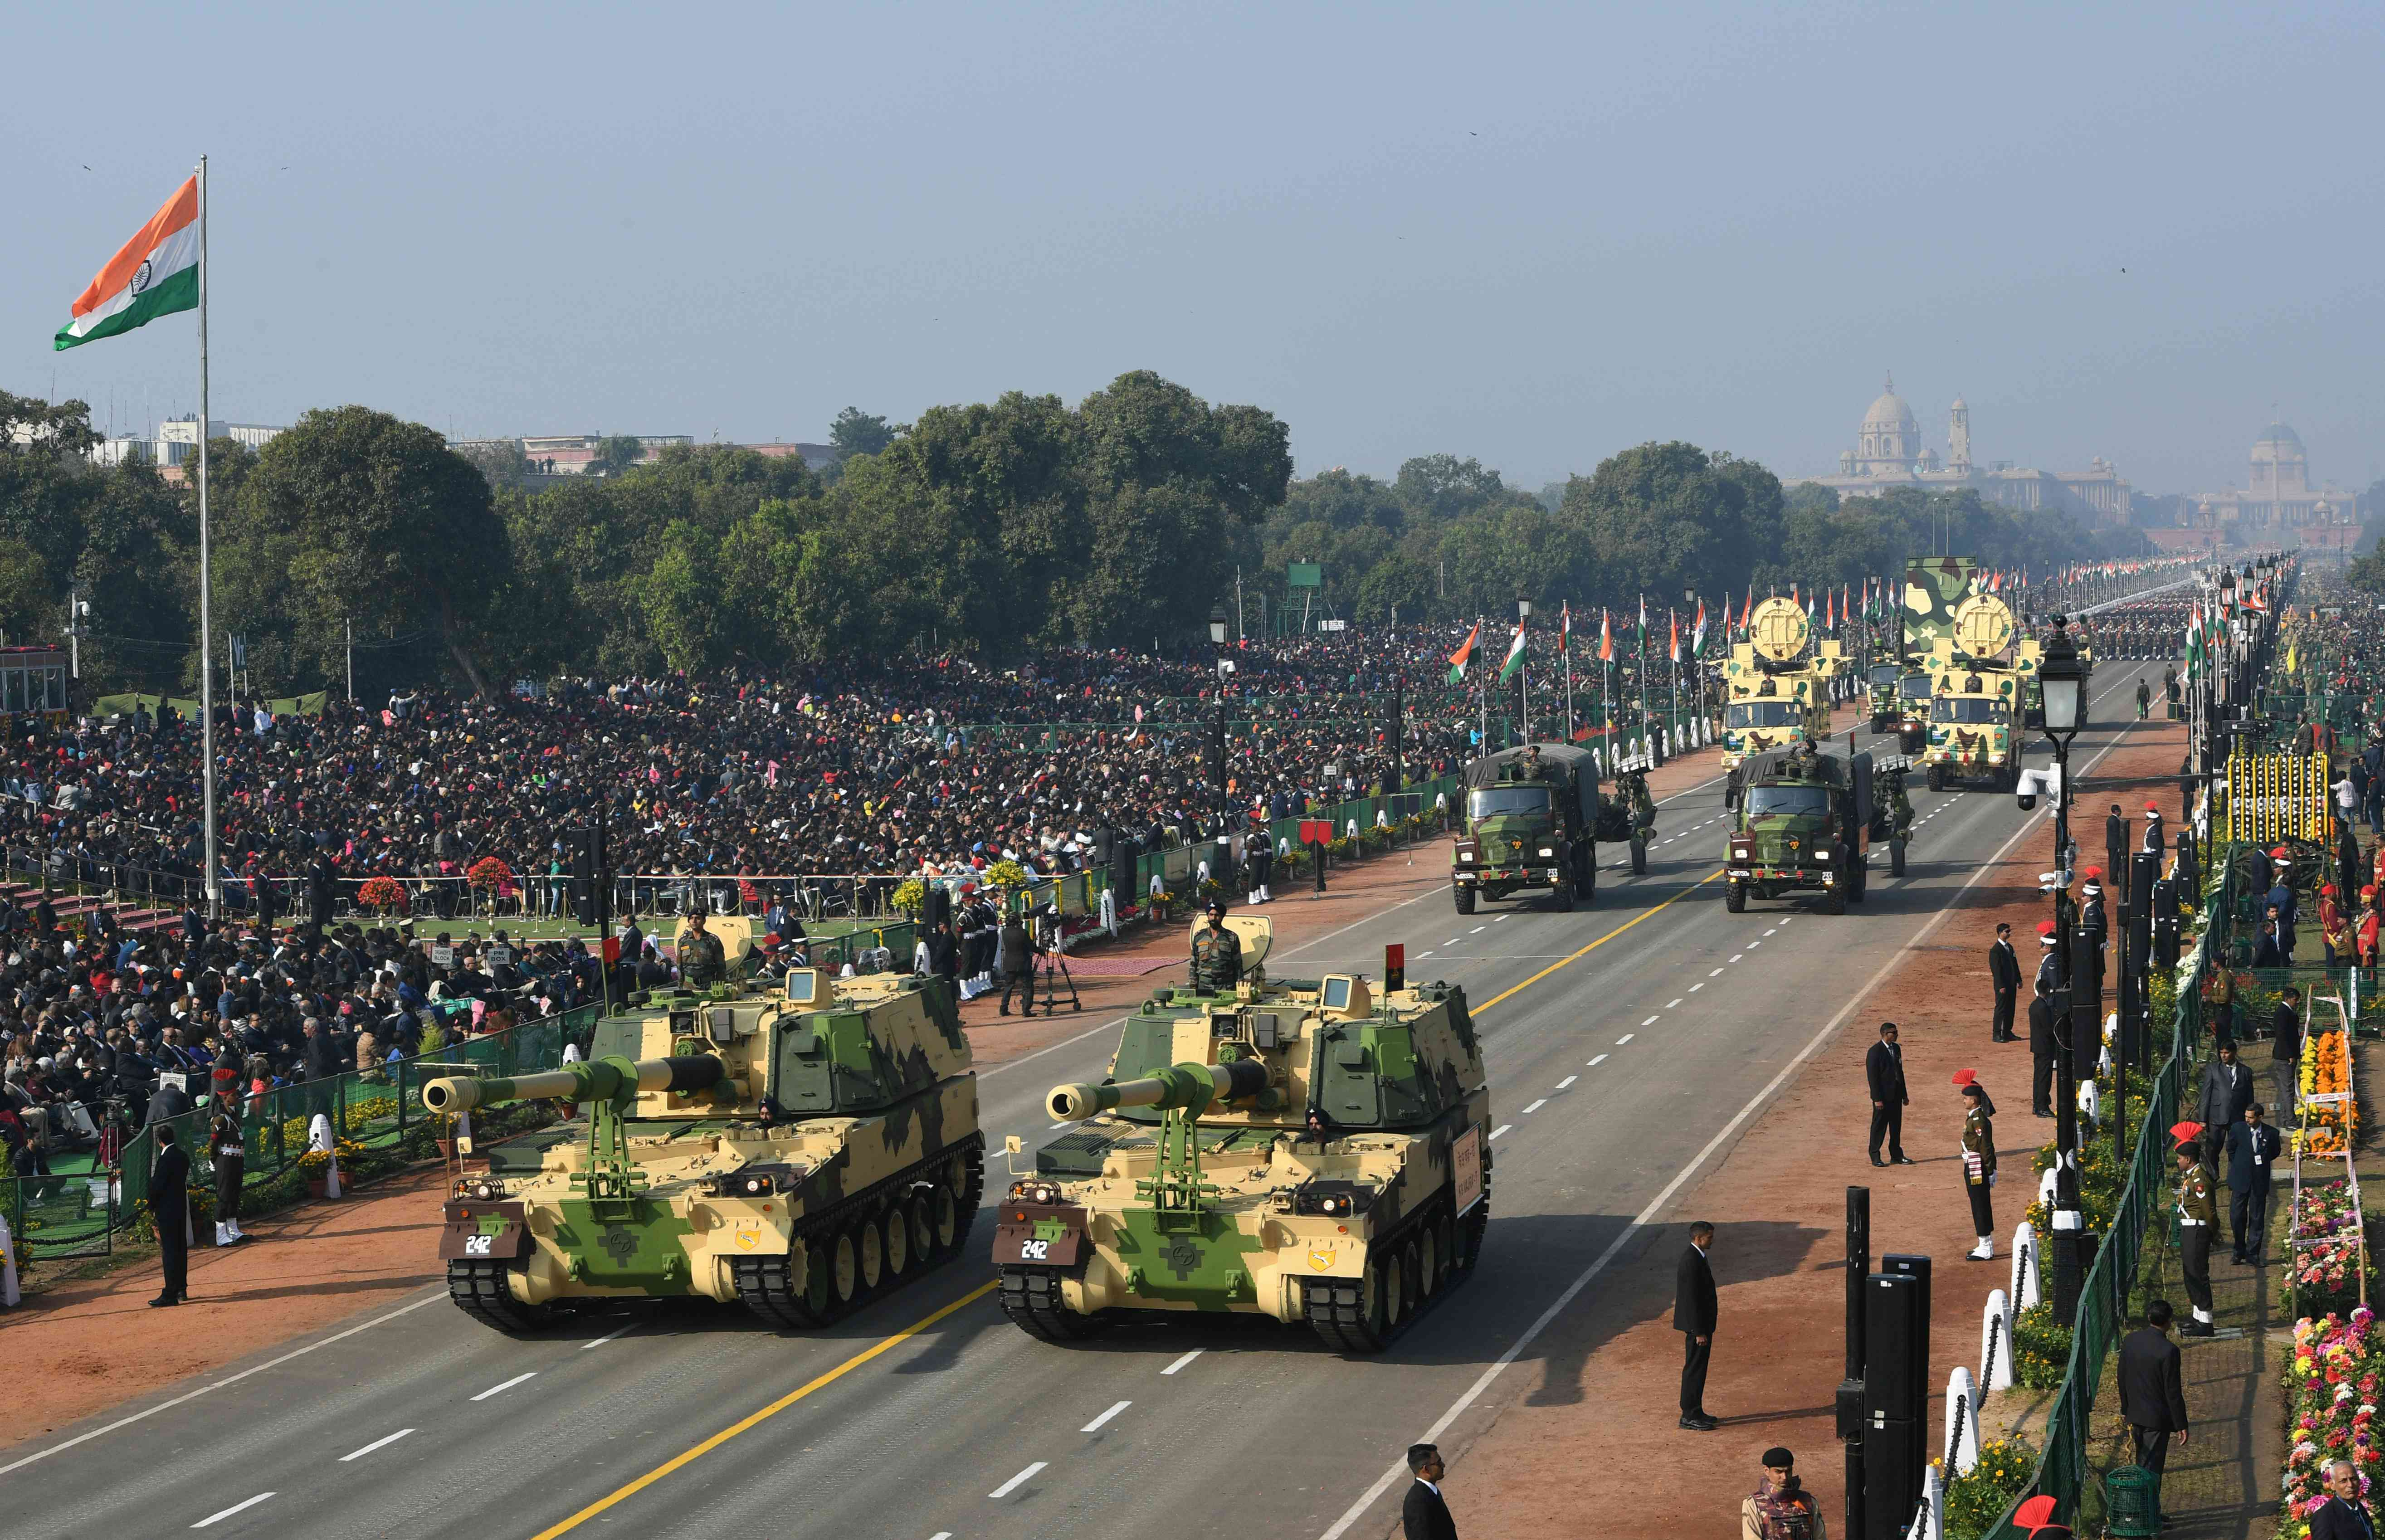 ndian army K9 Vajra-T tanks take part in the Republic Day parade in New Delhi (Photo credit: AFP)